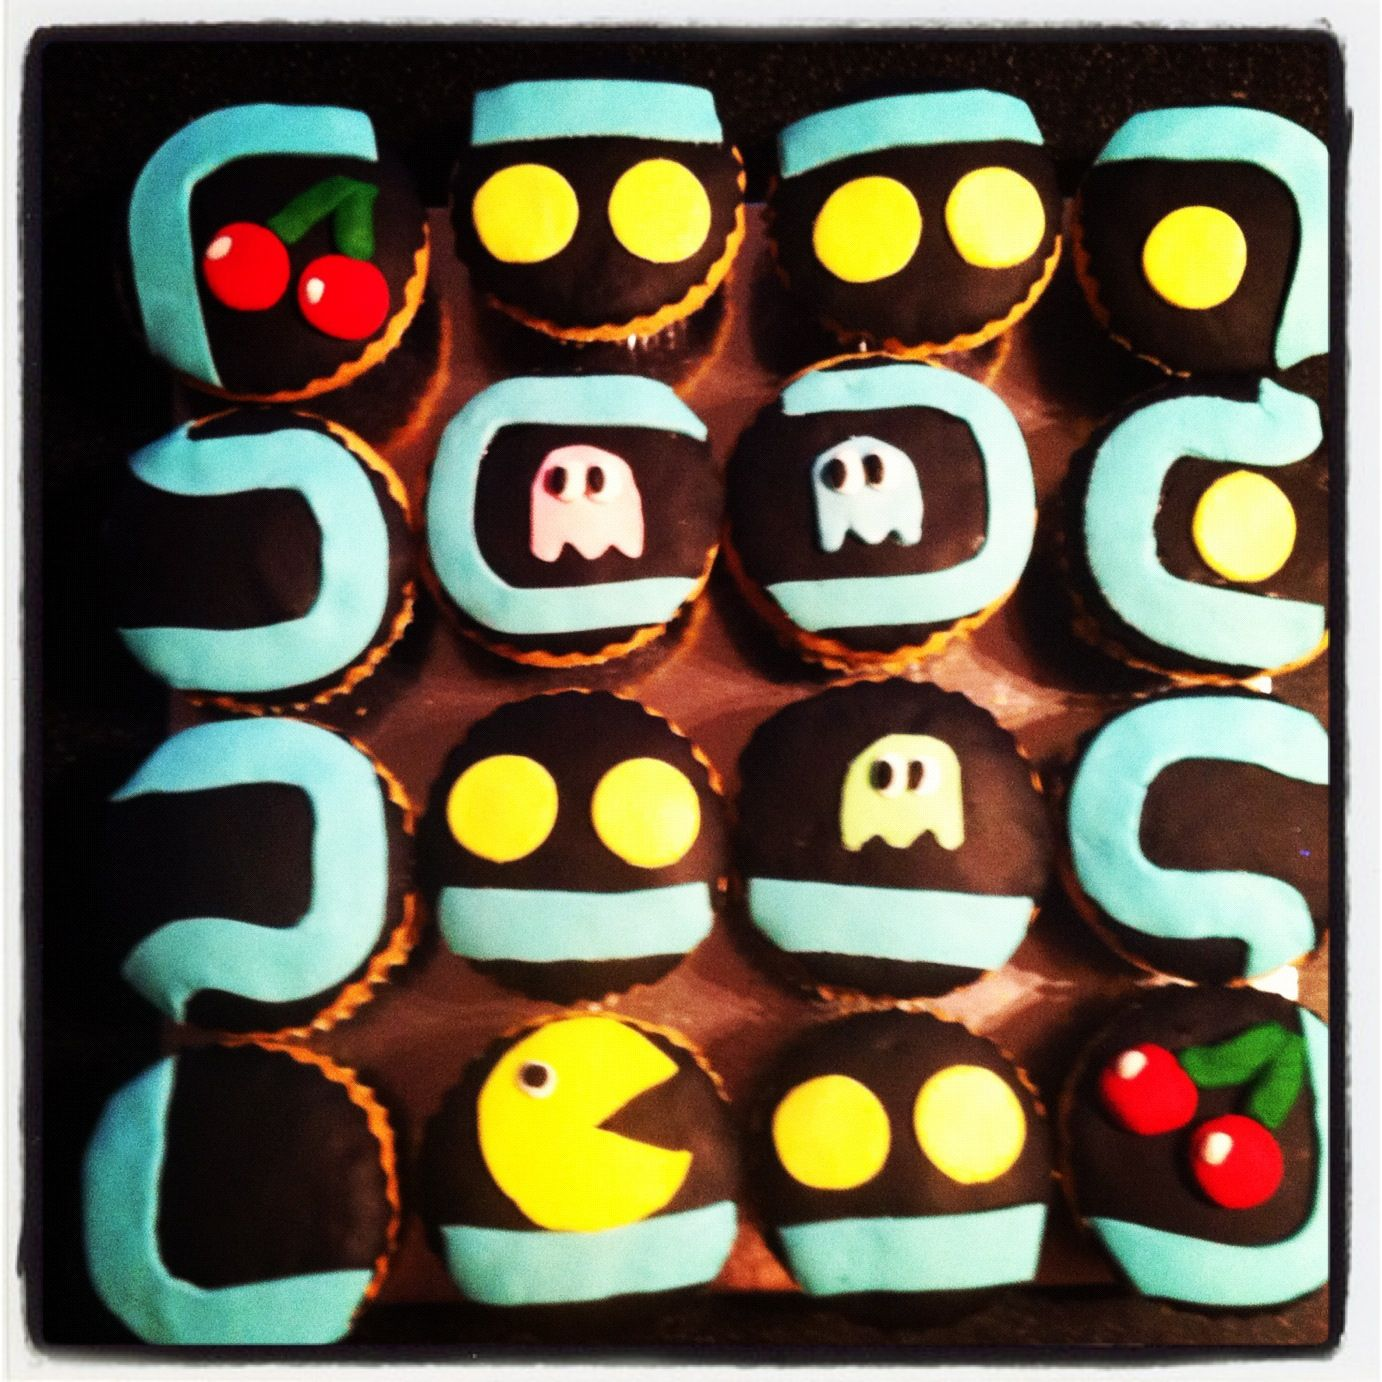 Pacman 80s style cupcakes made for a birthday.